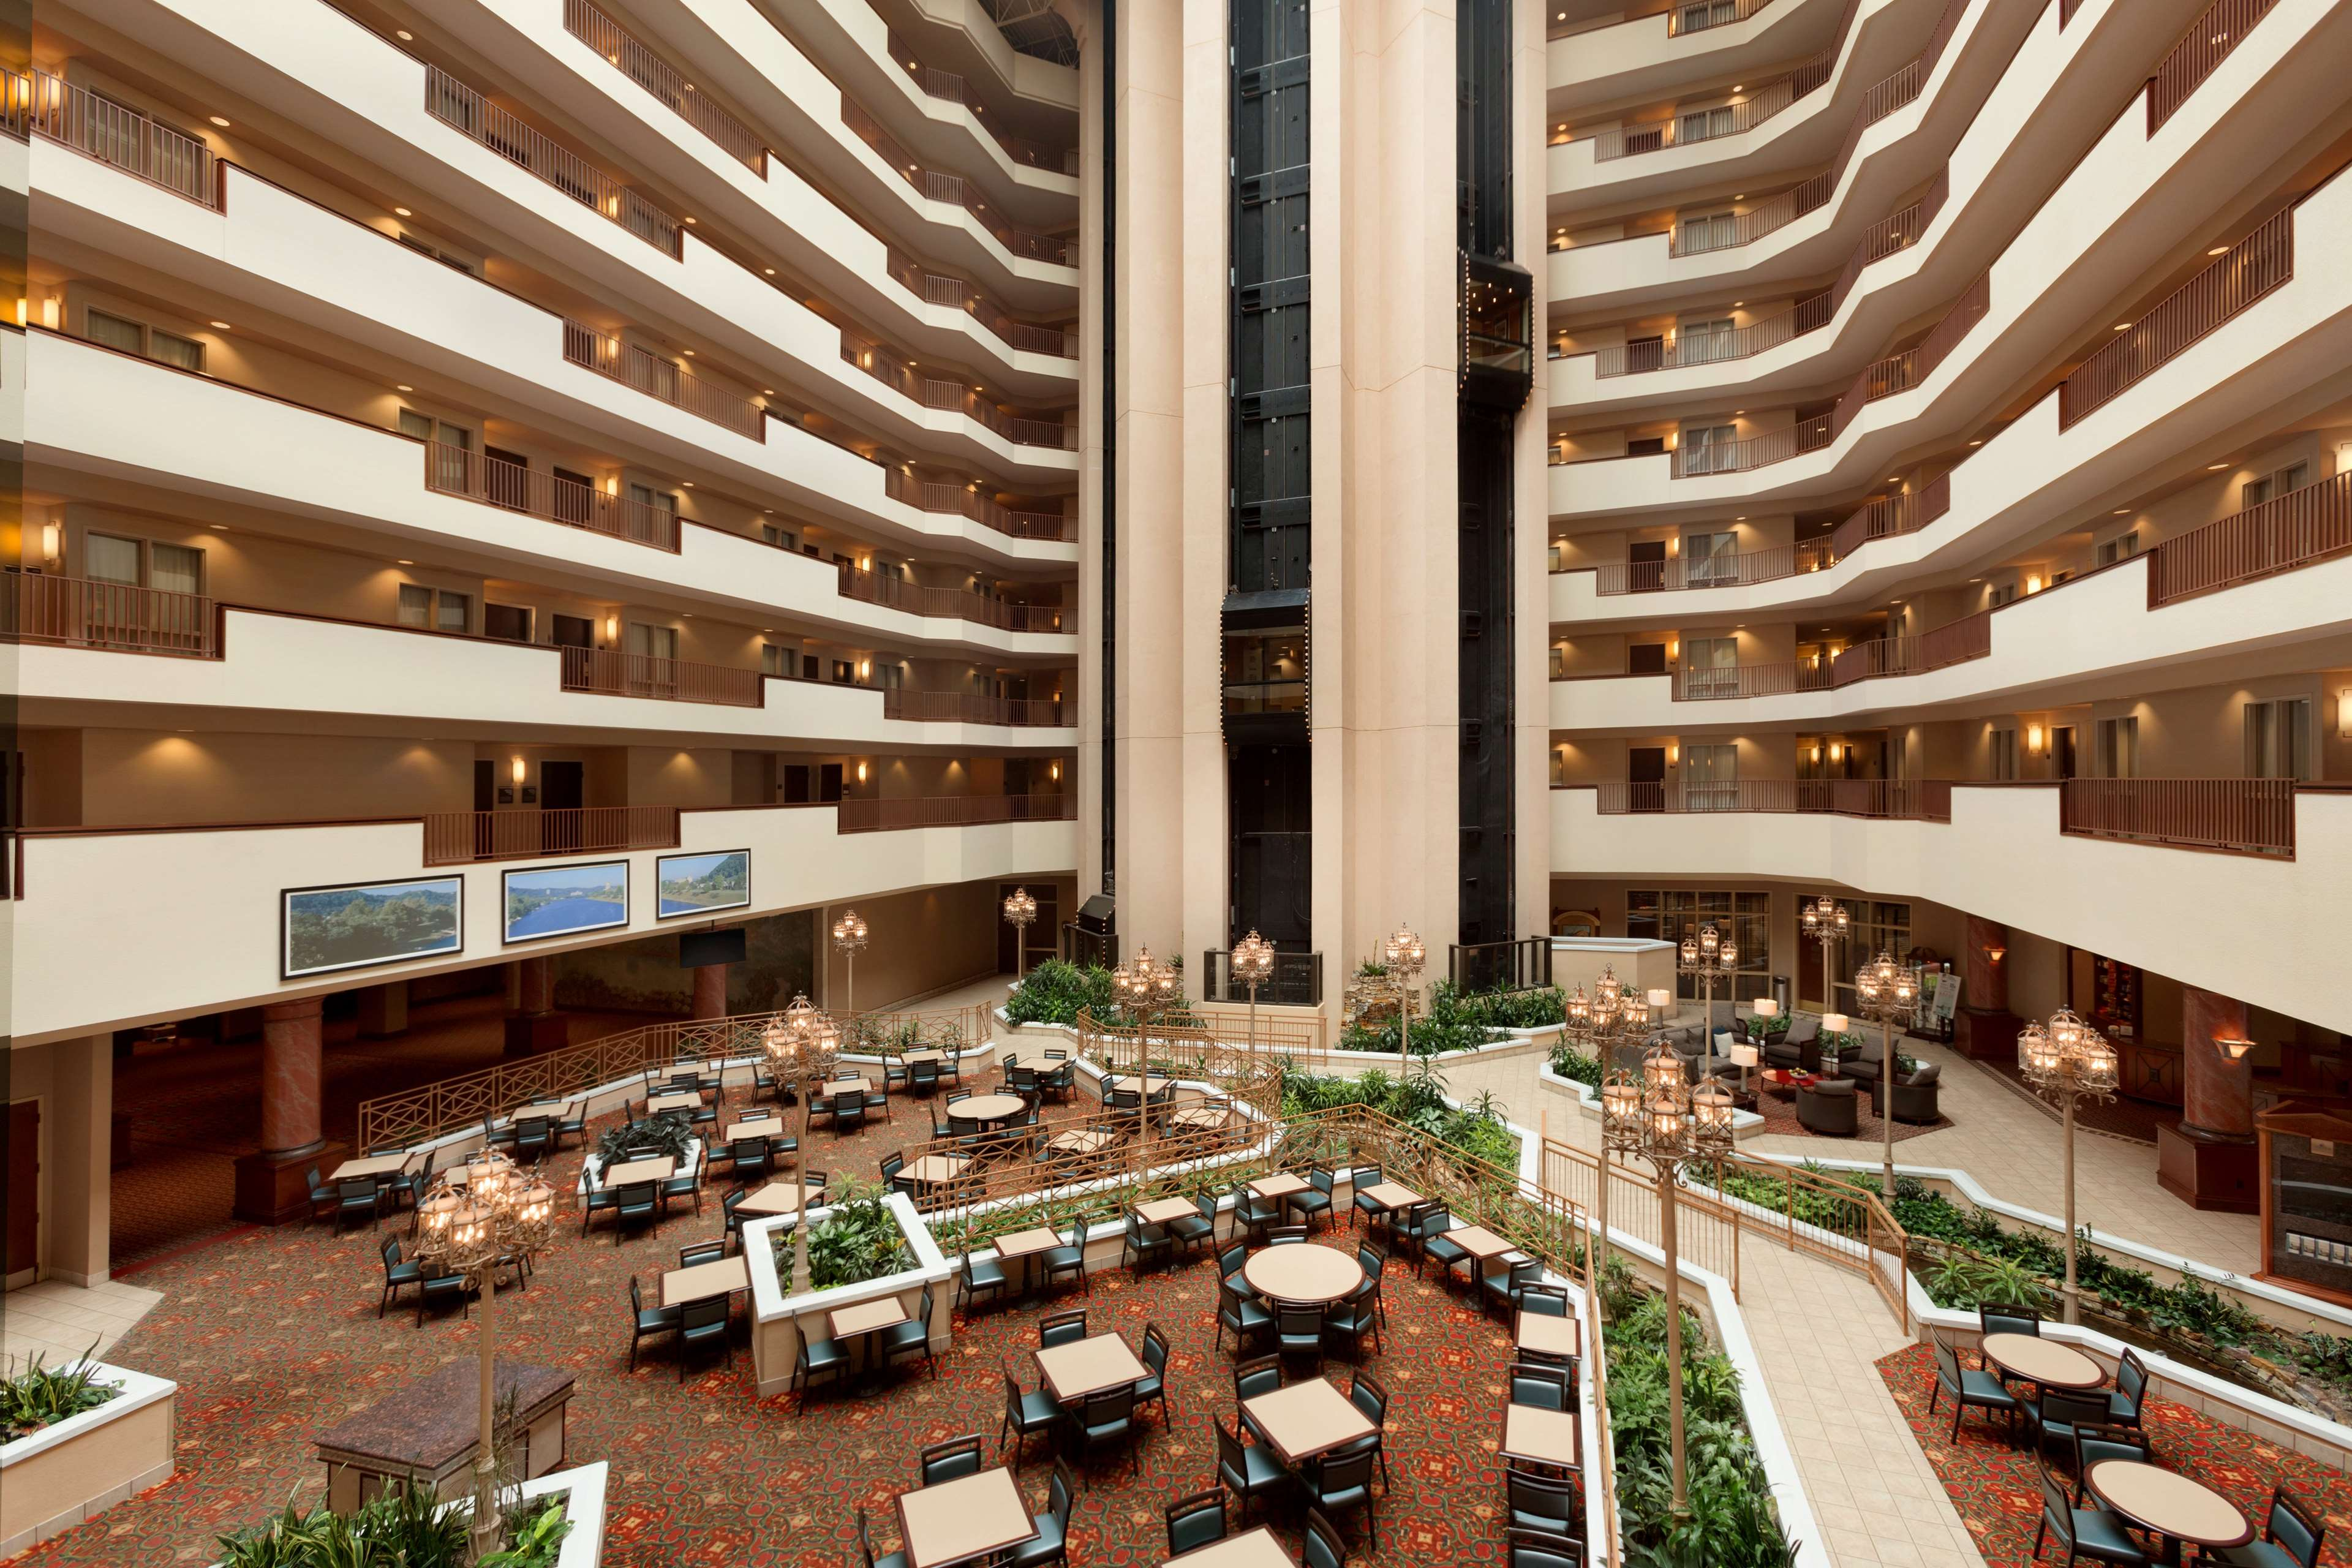 Embassy Suites by Hilton Charleston image 4